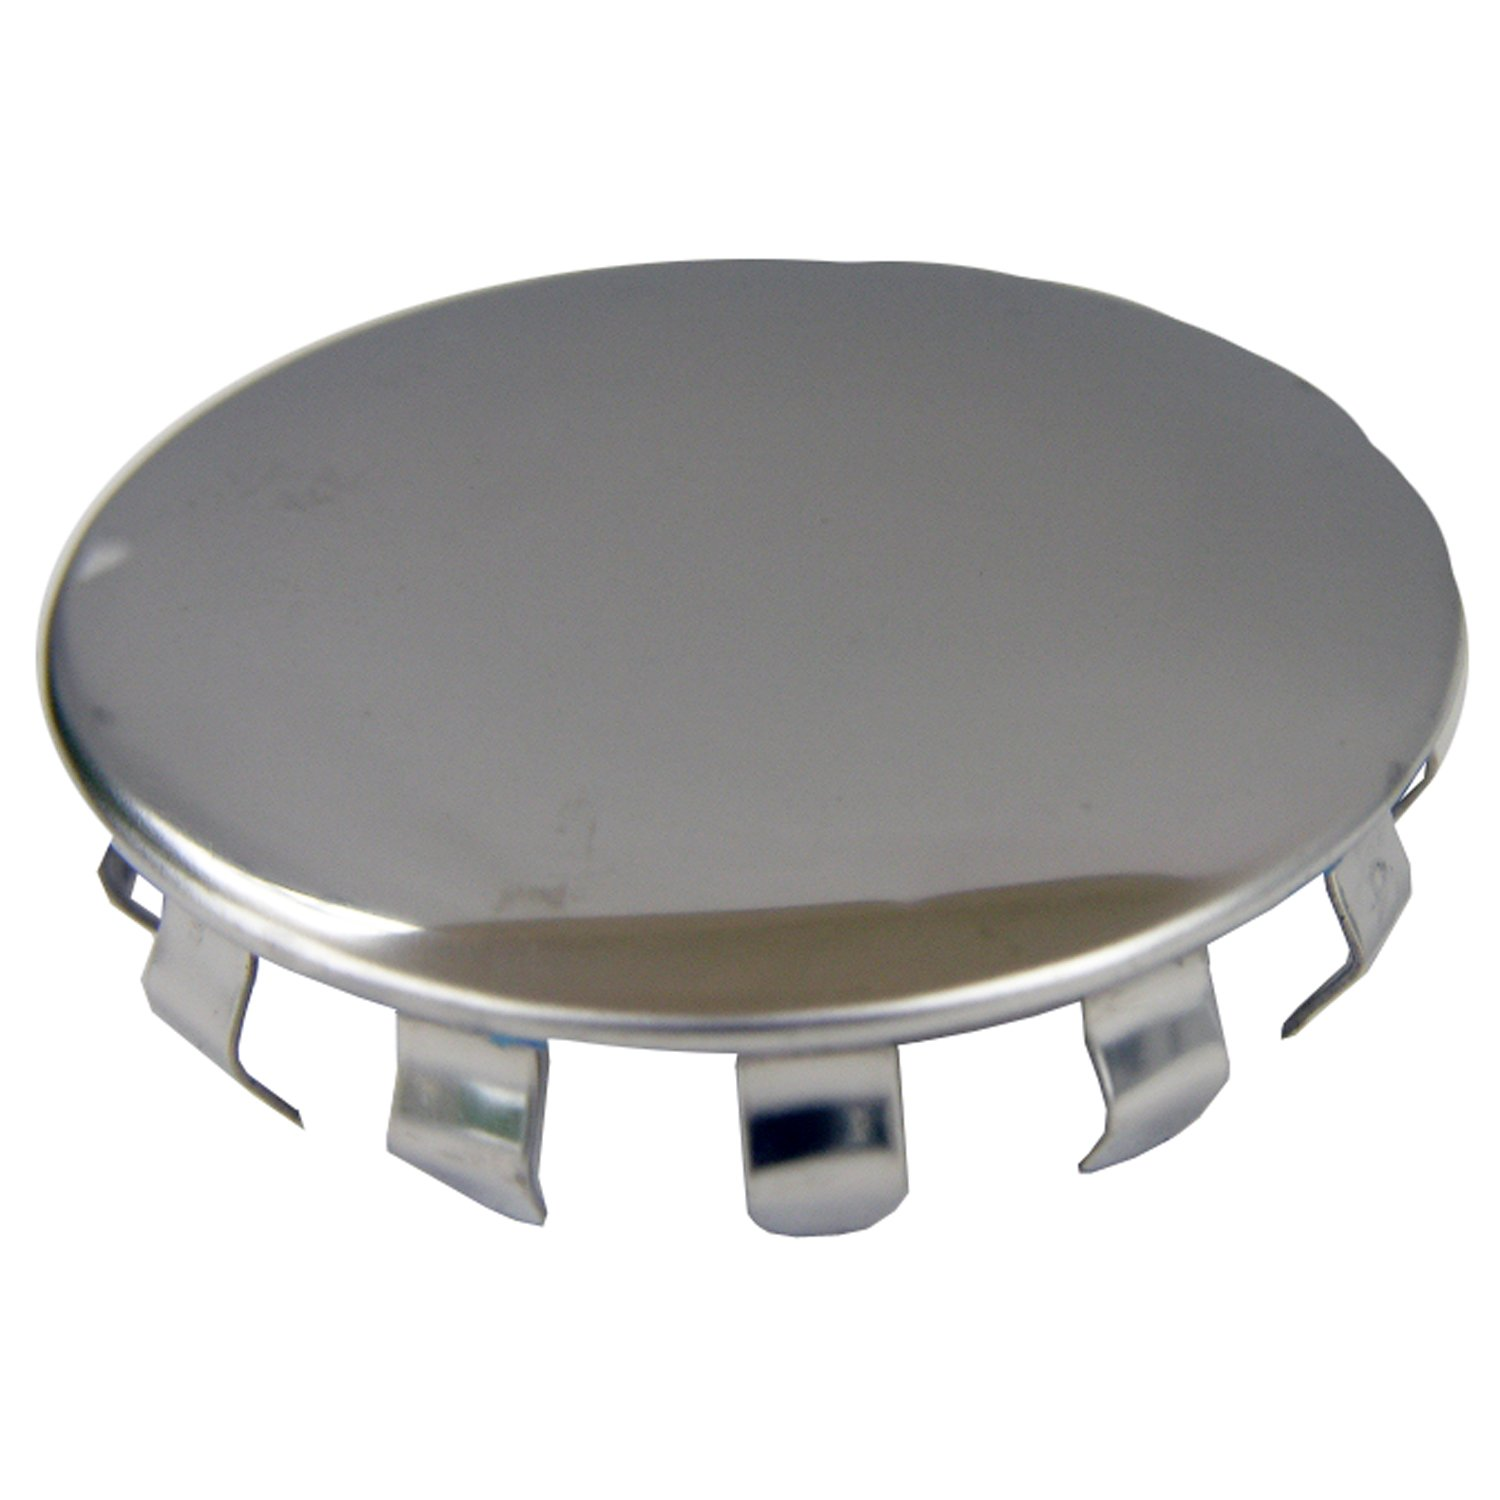 Furniture Hole Cover #32 - LASCO 03-1453 1-1/2-Inch Stainless Steel Sink Hole Cover Snap In Fits Most  Sinks - Single Bowl Sinks - Amazon.com